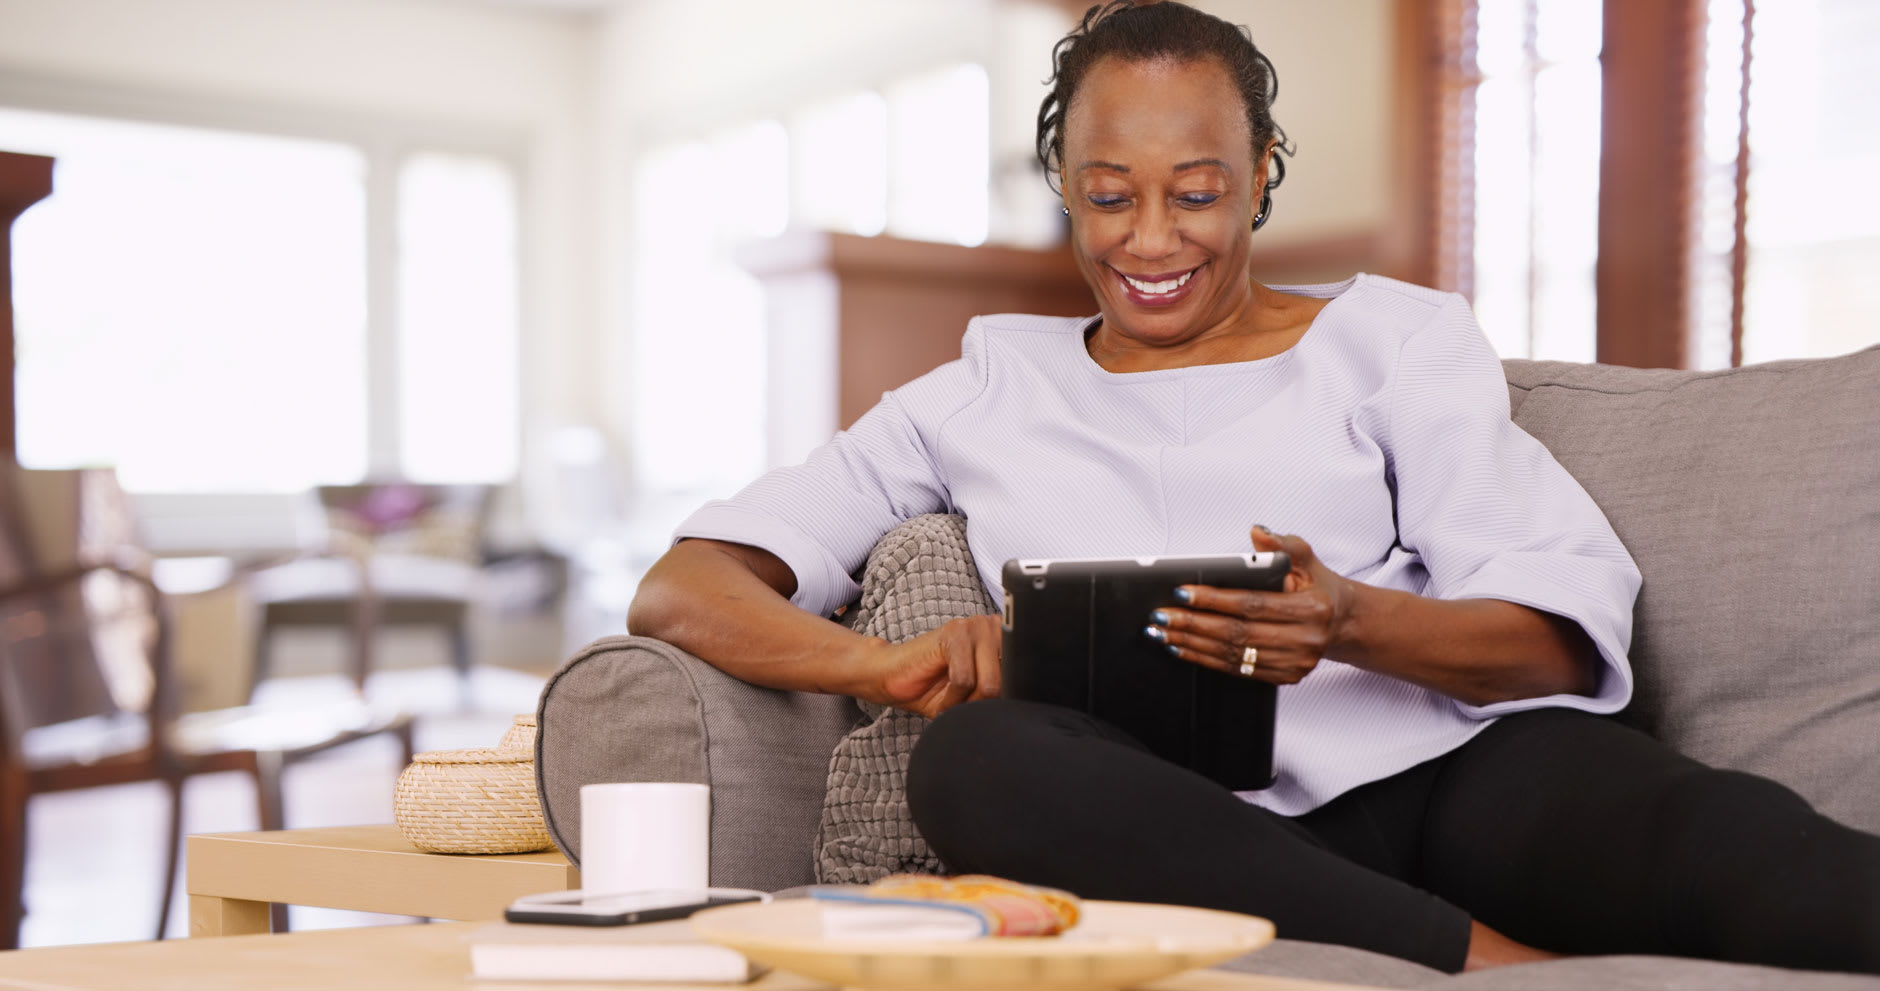 A woman is sitting on a grey sofa looking at an iPad and smiling confidently.